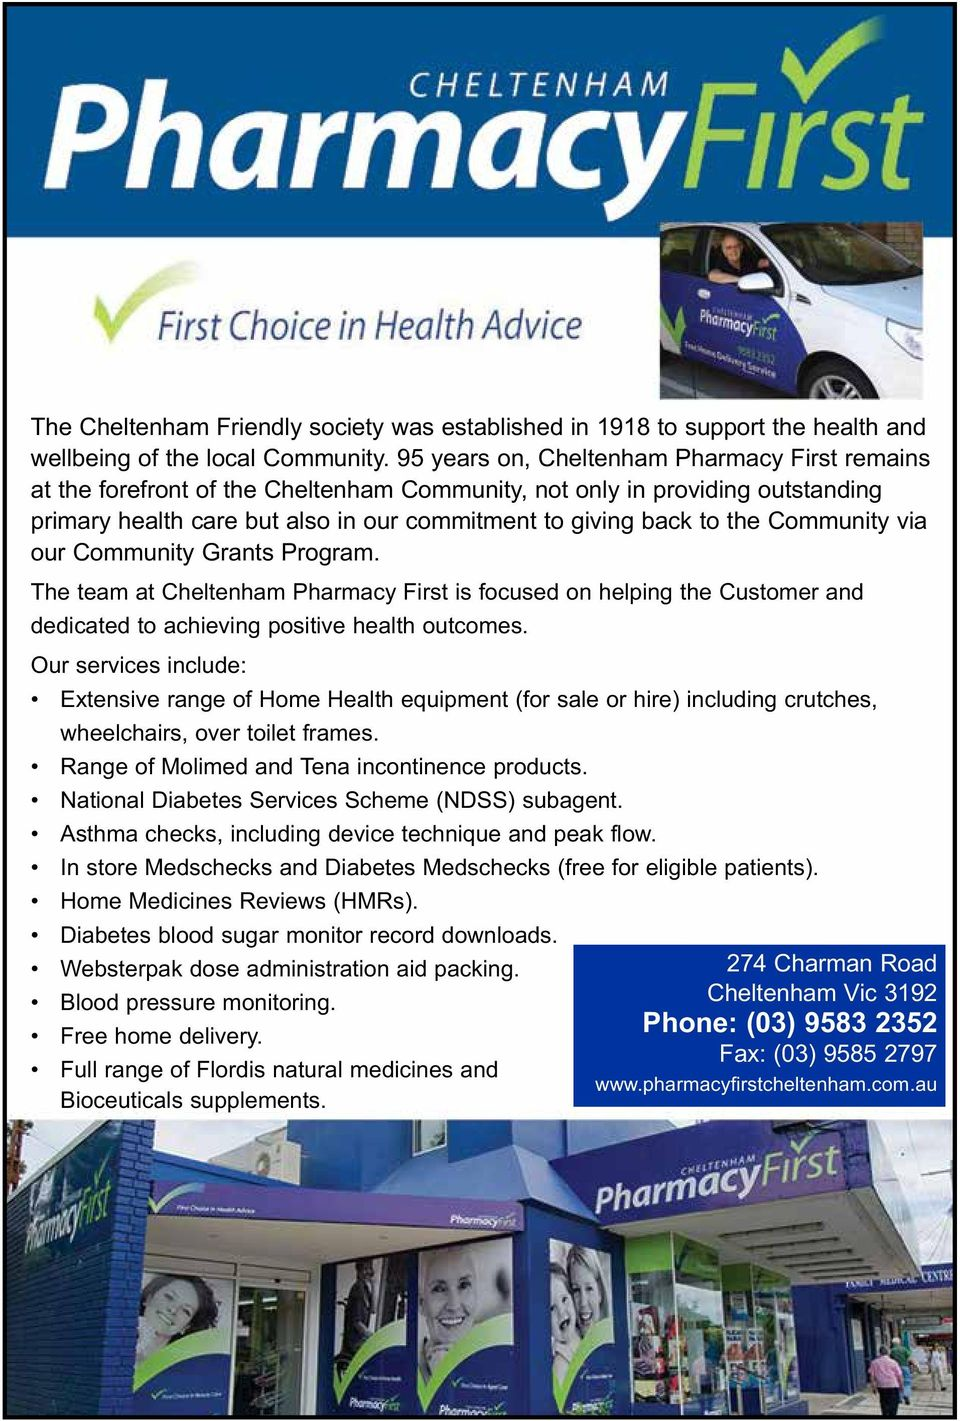 Community via our Community Grants Program. The team at Cheltenham Pharmacy First is focused on helping the Customer and dedicated to achieving positive health outcomes.